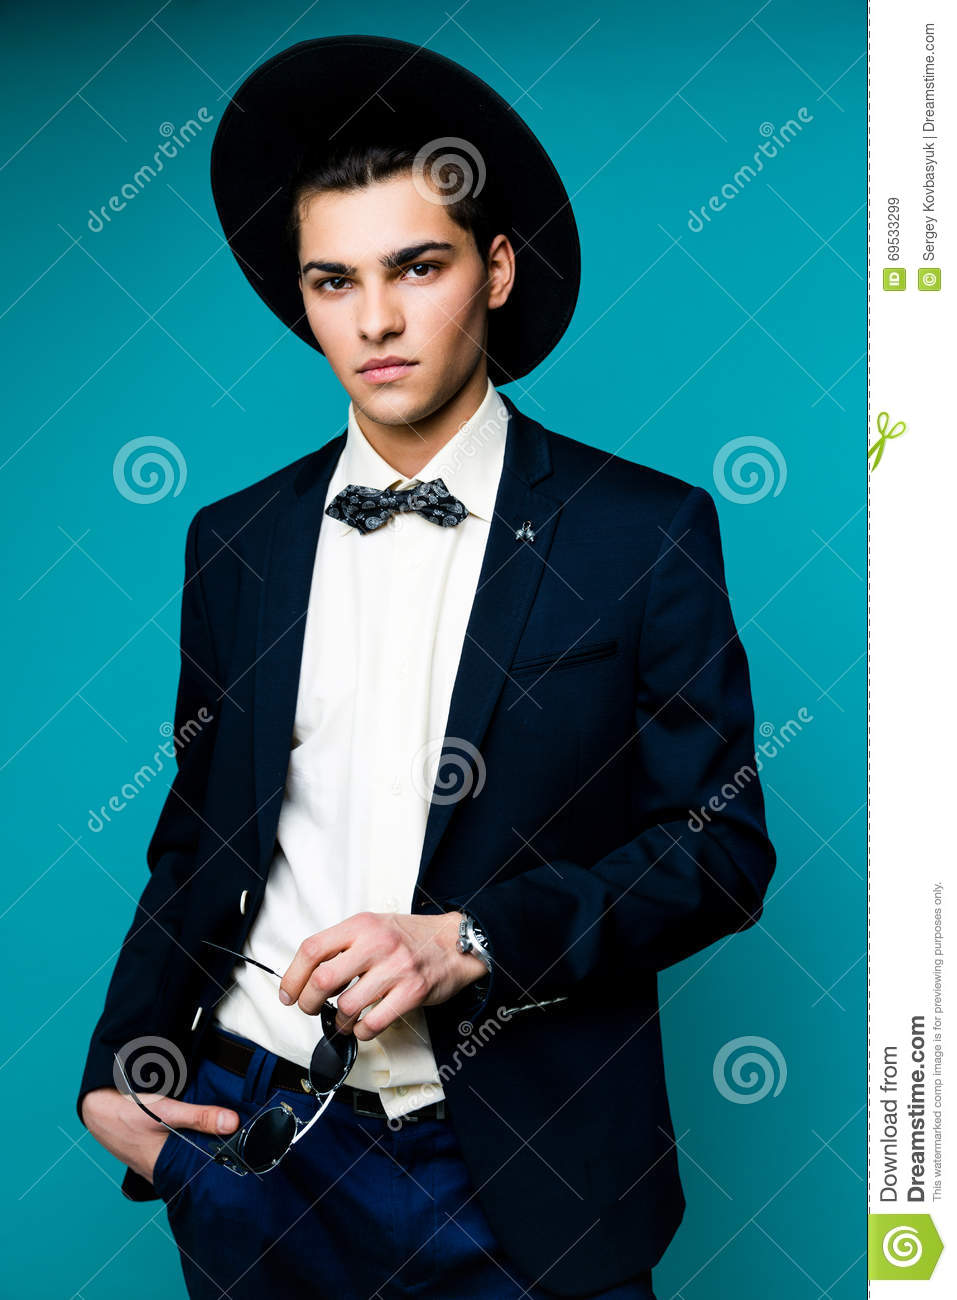 Fashionable Handsome Man in hat wearing elegant suit.